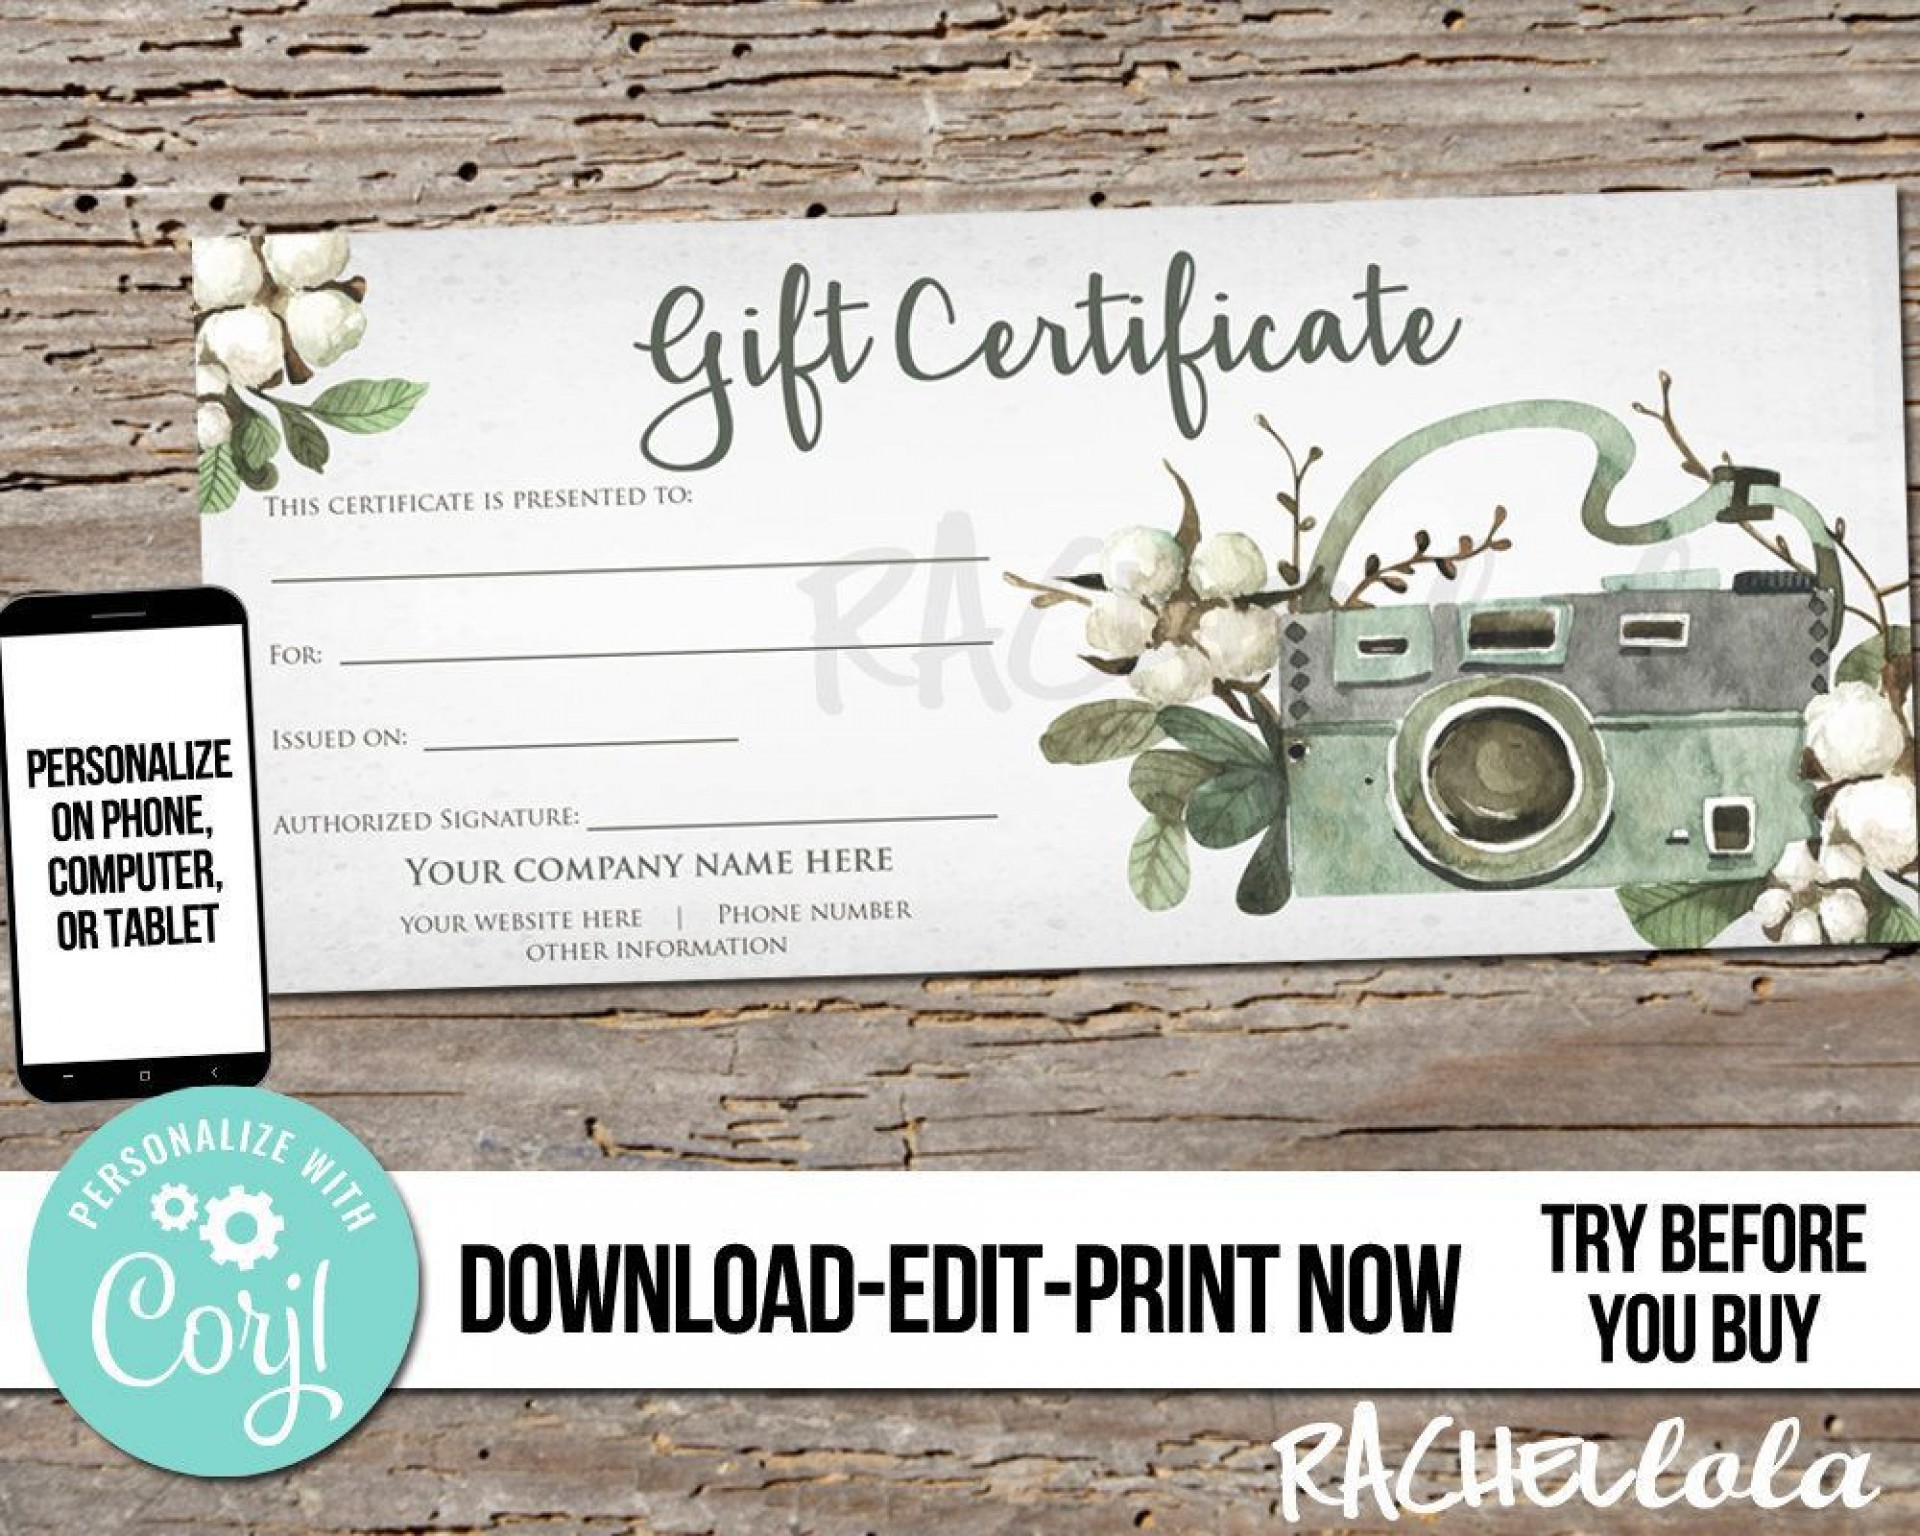 003 Awesome Photography Session Gift Certificate Template Concept  Photo Free Photoshoot1920